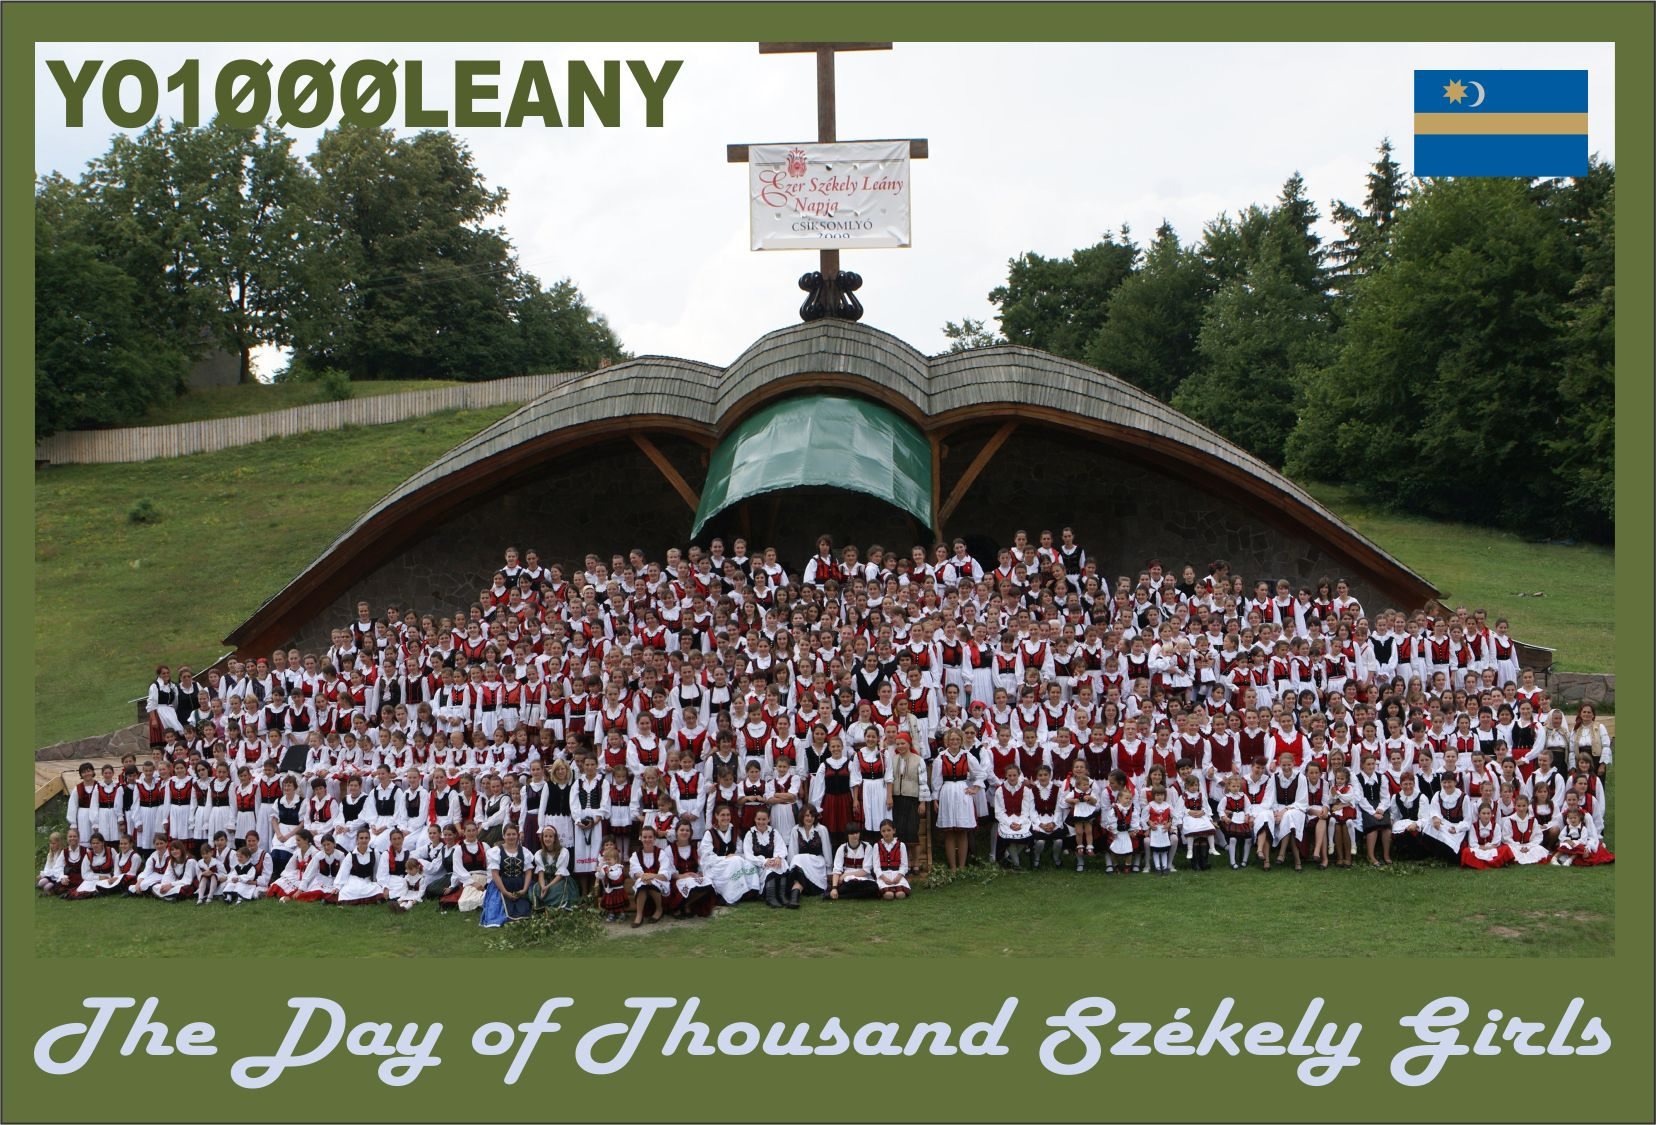 QSL image for YO1000LEANY